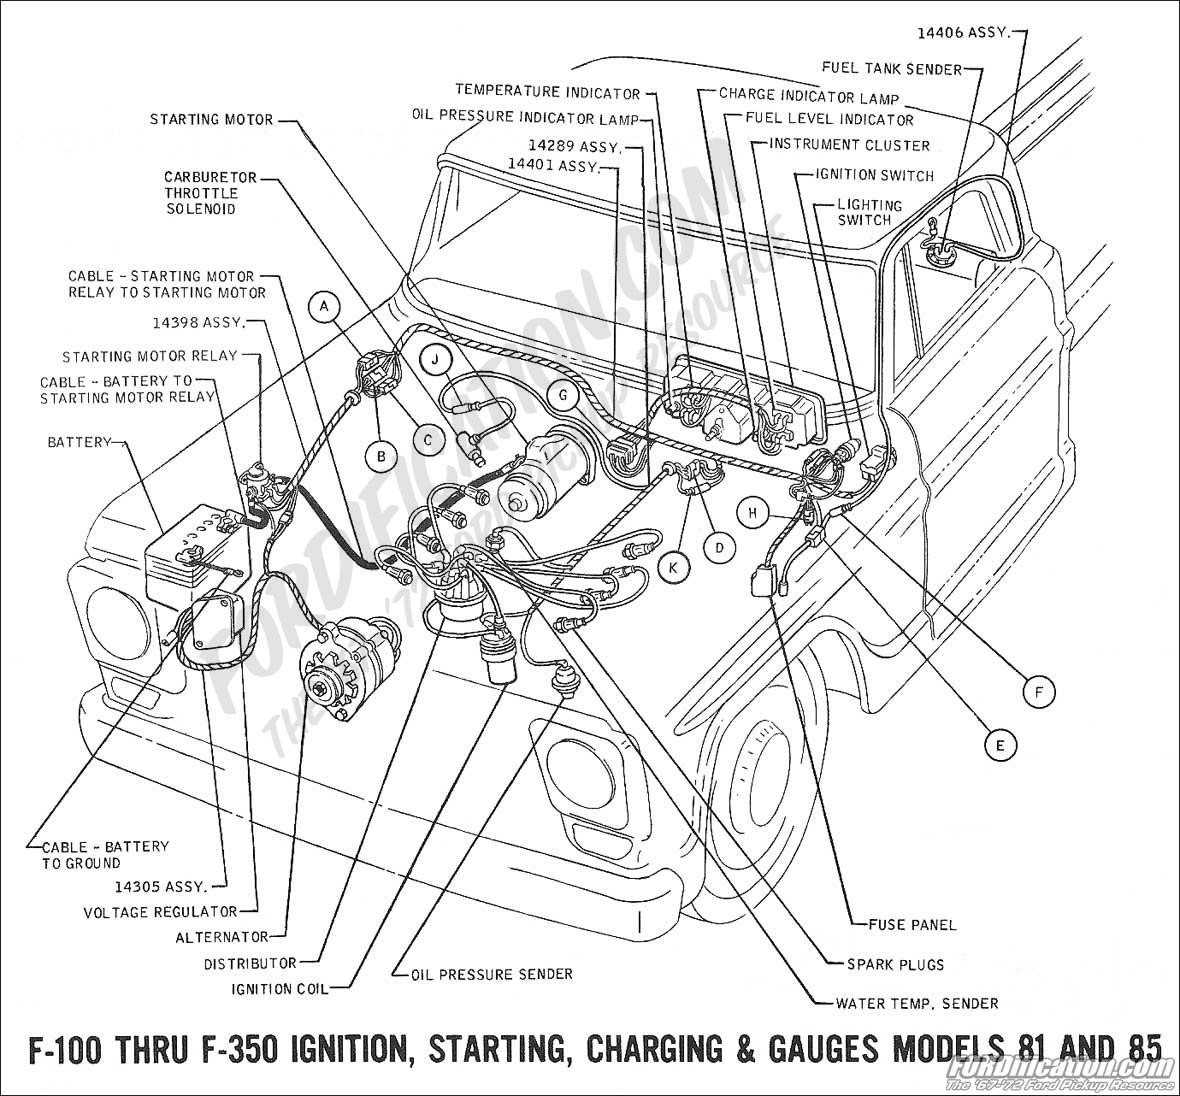 wiring 1969charging ford truck technical drawings and schematics section h wiring ford ignition wiring diagram at honlapkeszites.co